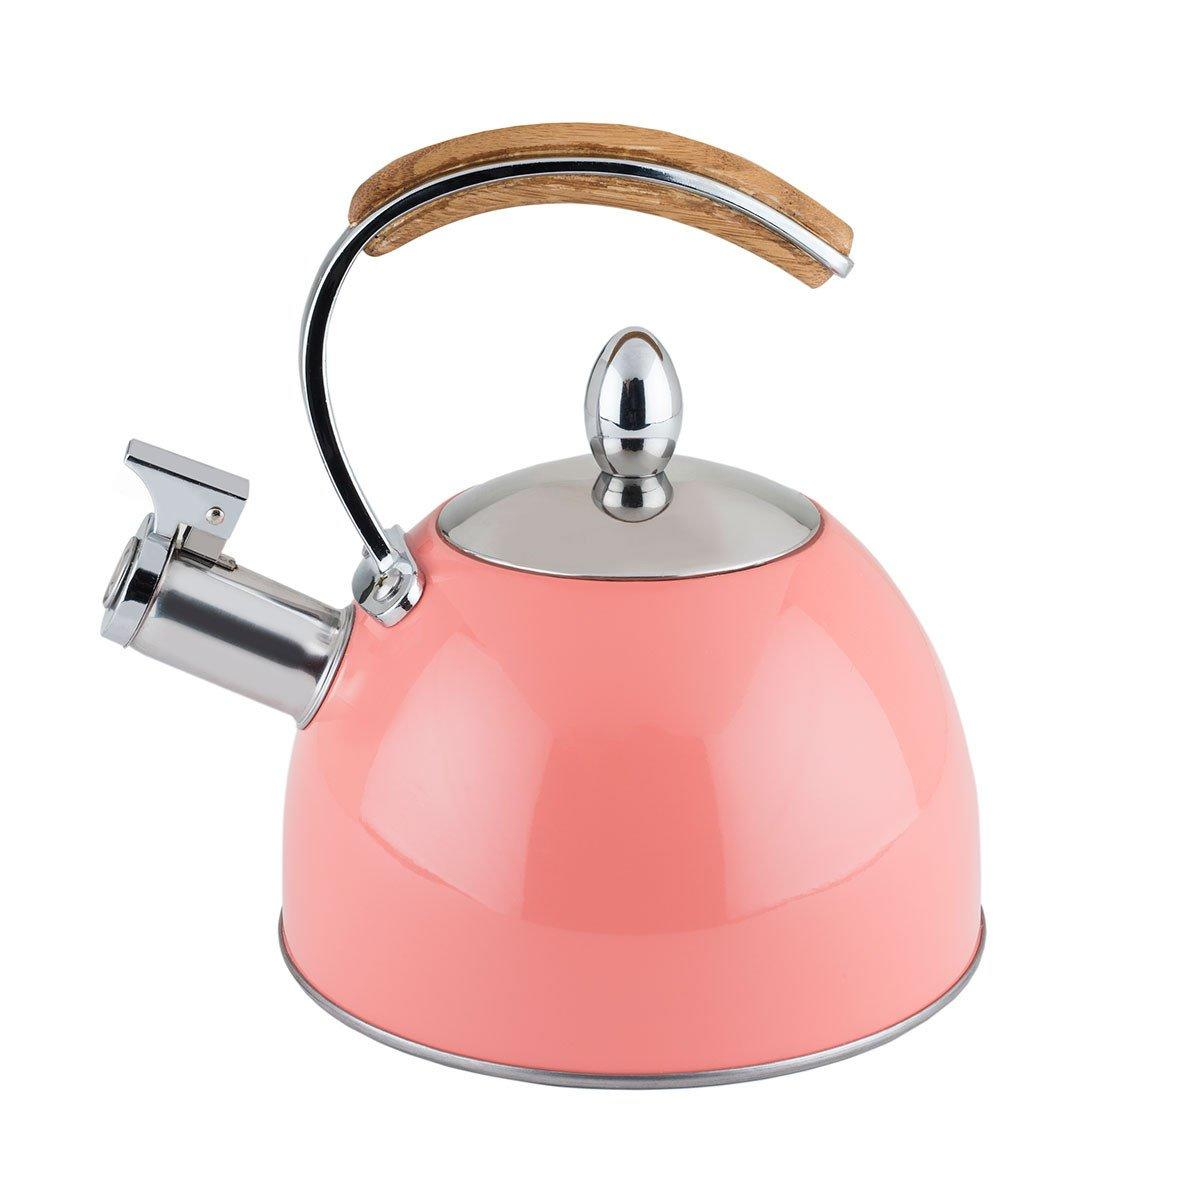 Pretty Peach Stovetop Kettle - Only £39.99 from Uberstar.com